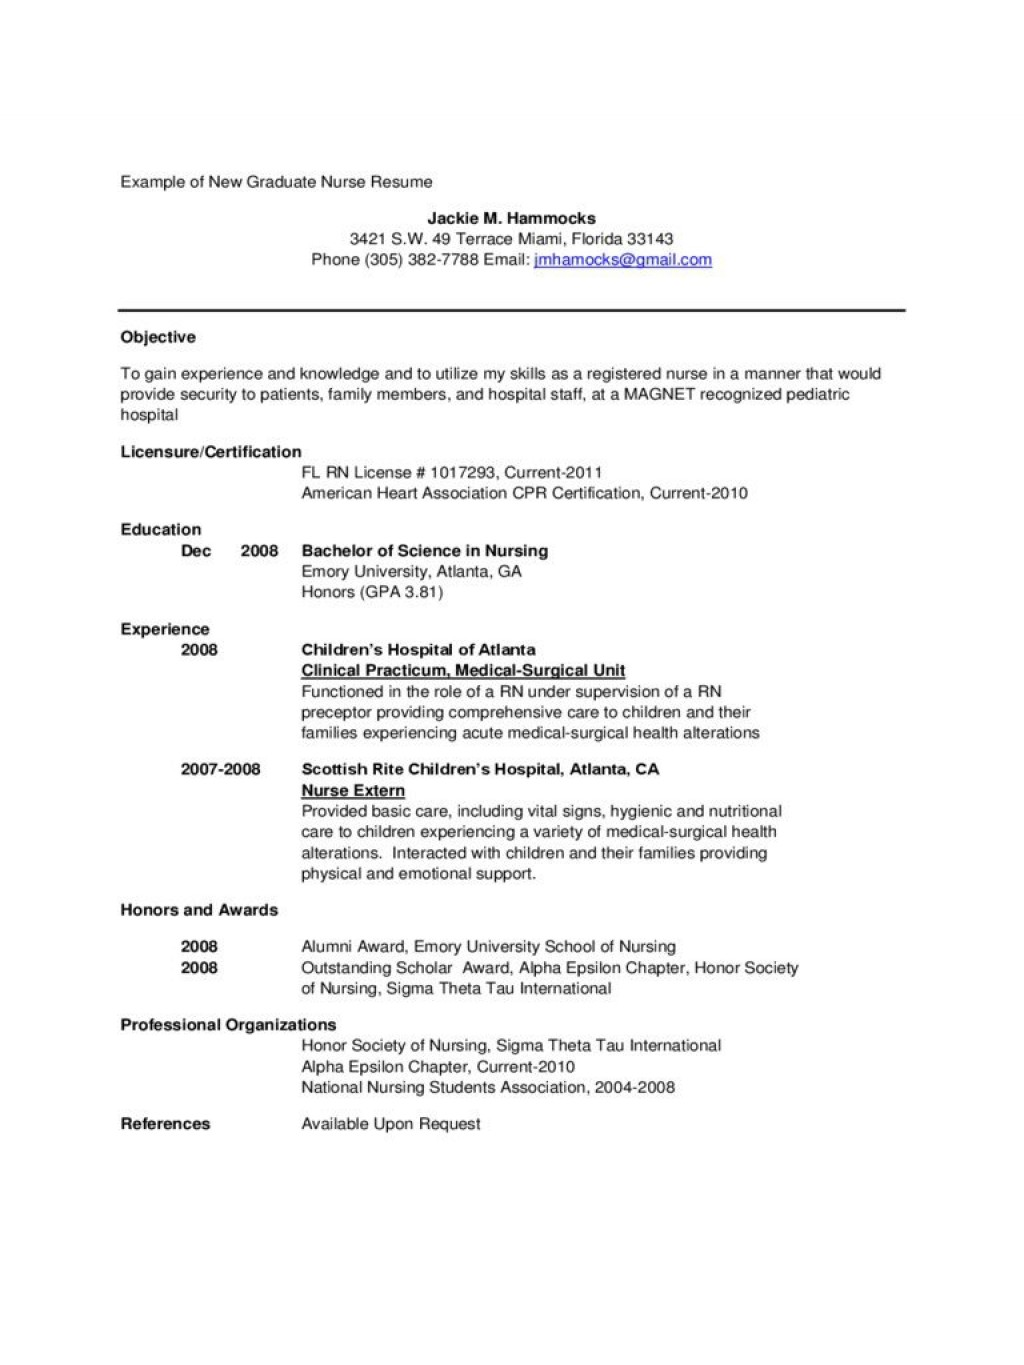 001 Archaicawful Resume Template For Nurse High Resolution  Sample Nursing Assistant With No Experience Rn' FreeLarge